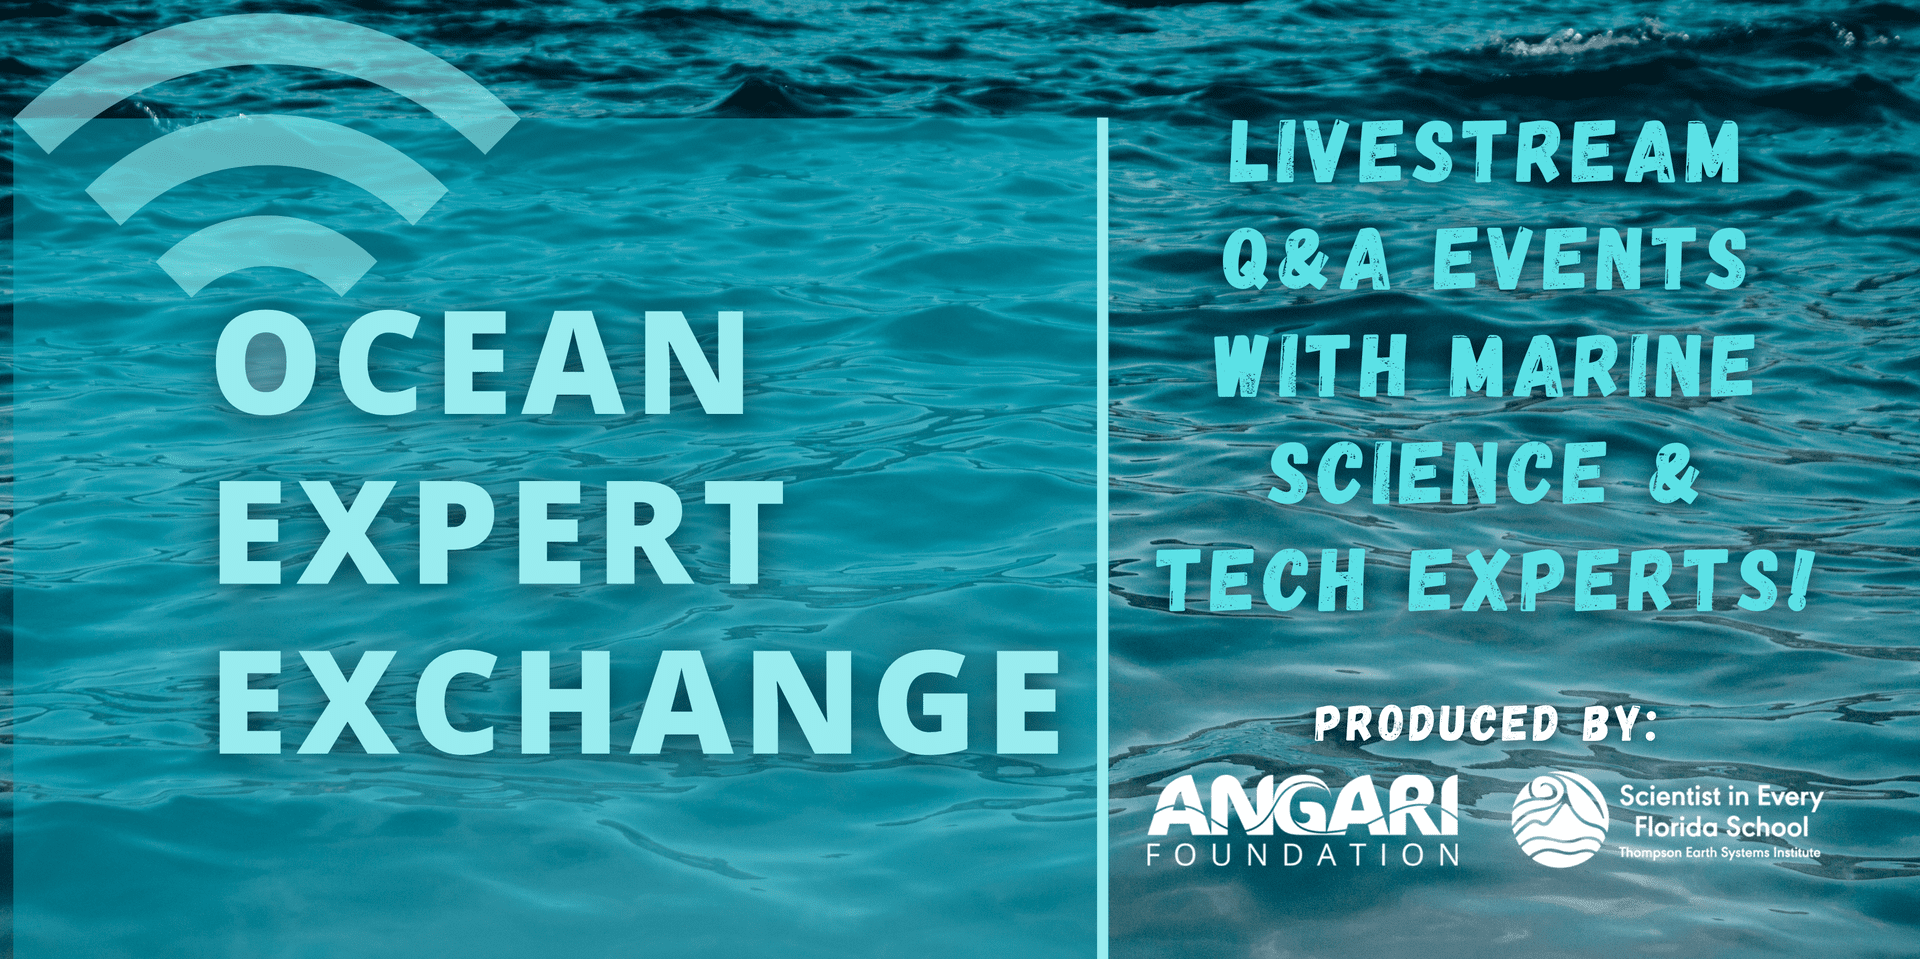 Ocean Expert Exchange Will Cover Sharks, Shipwrecks And Invasive Species Like Lionfish